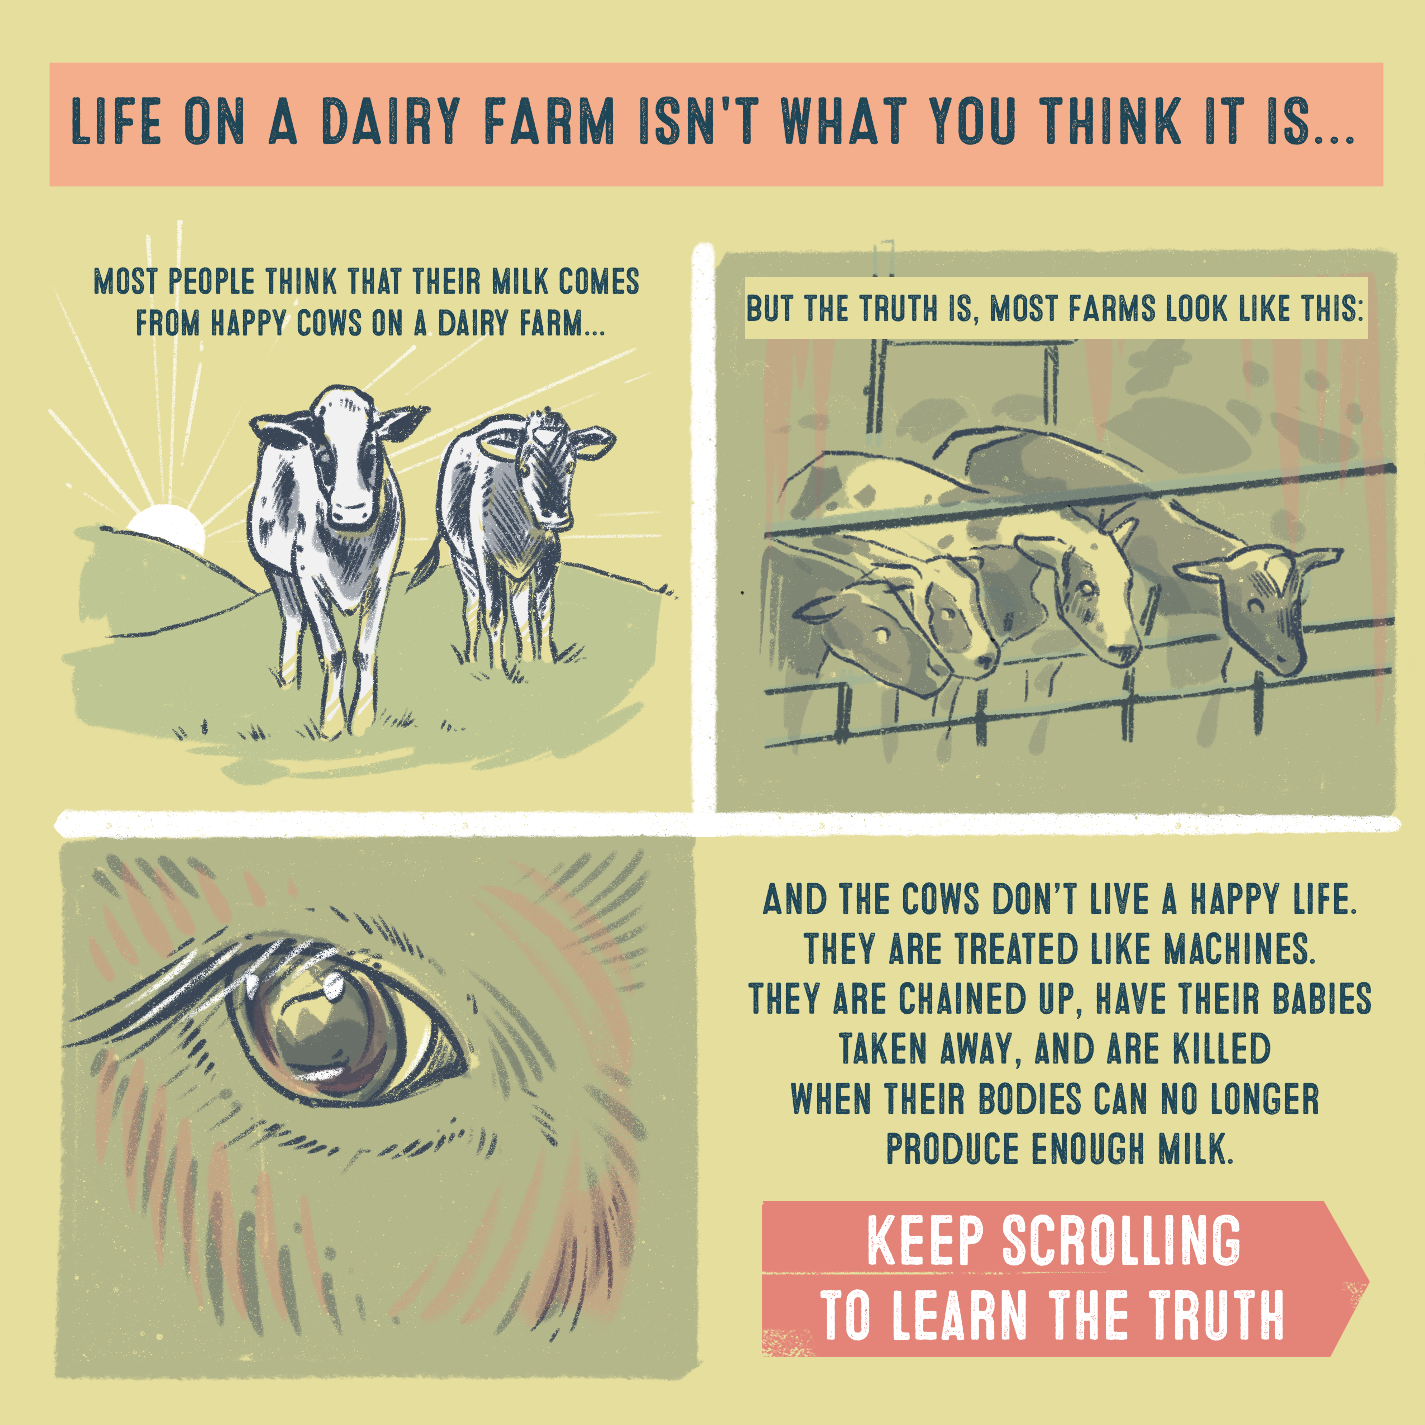 And the cows don't live a happy life. They are treated like machines. They are chained up, have their babies taken away, and are killed when their bodies can no longer produce enough milk.  Keep scrolling to learn the truth